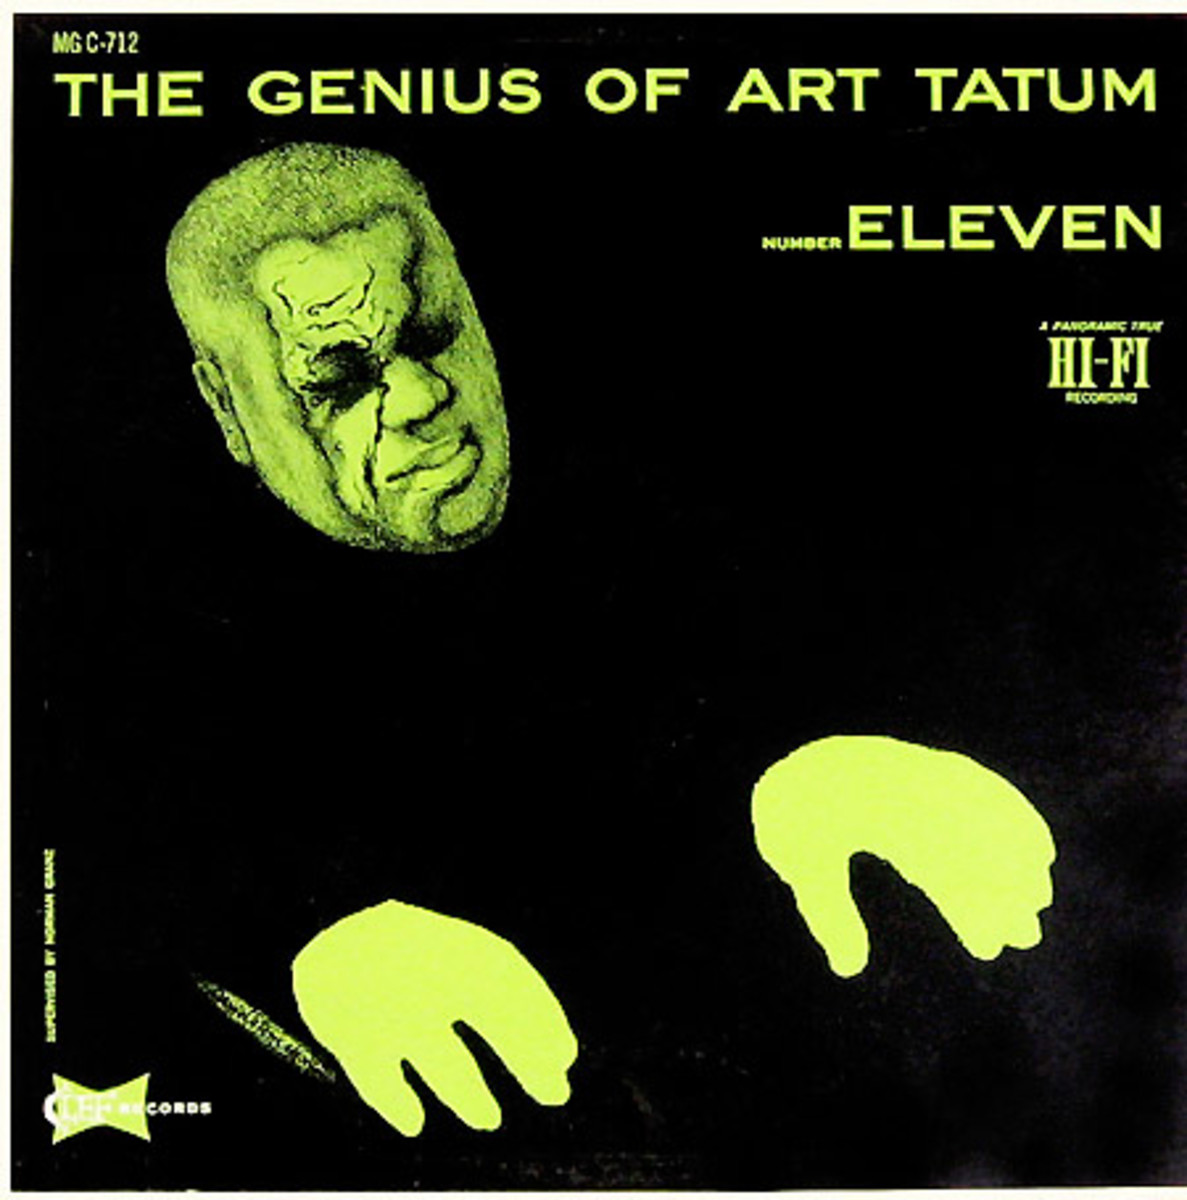 "Art Tatum ""The Genius of Art Tatum, No. 11"" Clef Records MG C 712 12"" LP Vinyl Record (1956) Album Cover Art by David Stone Martin"